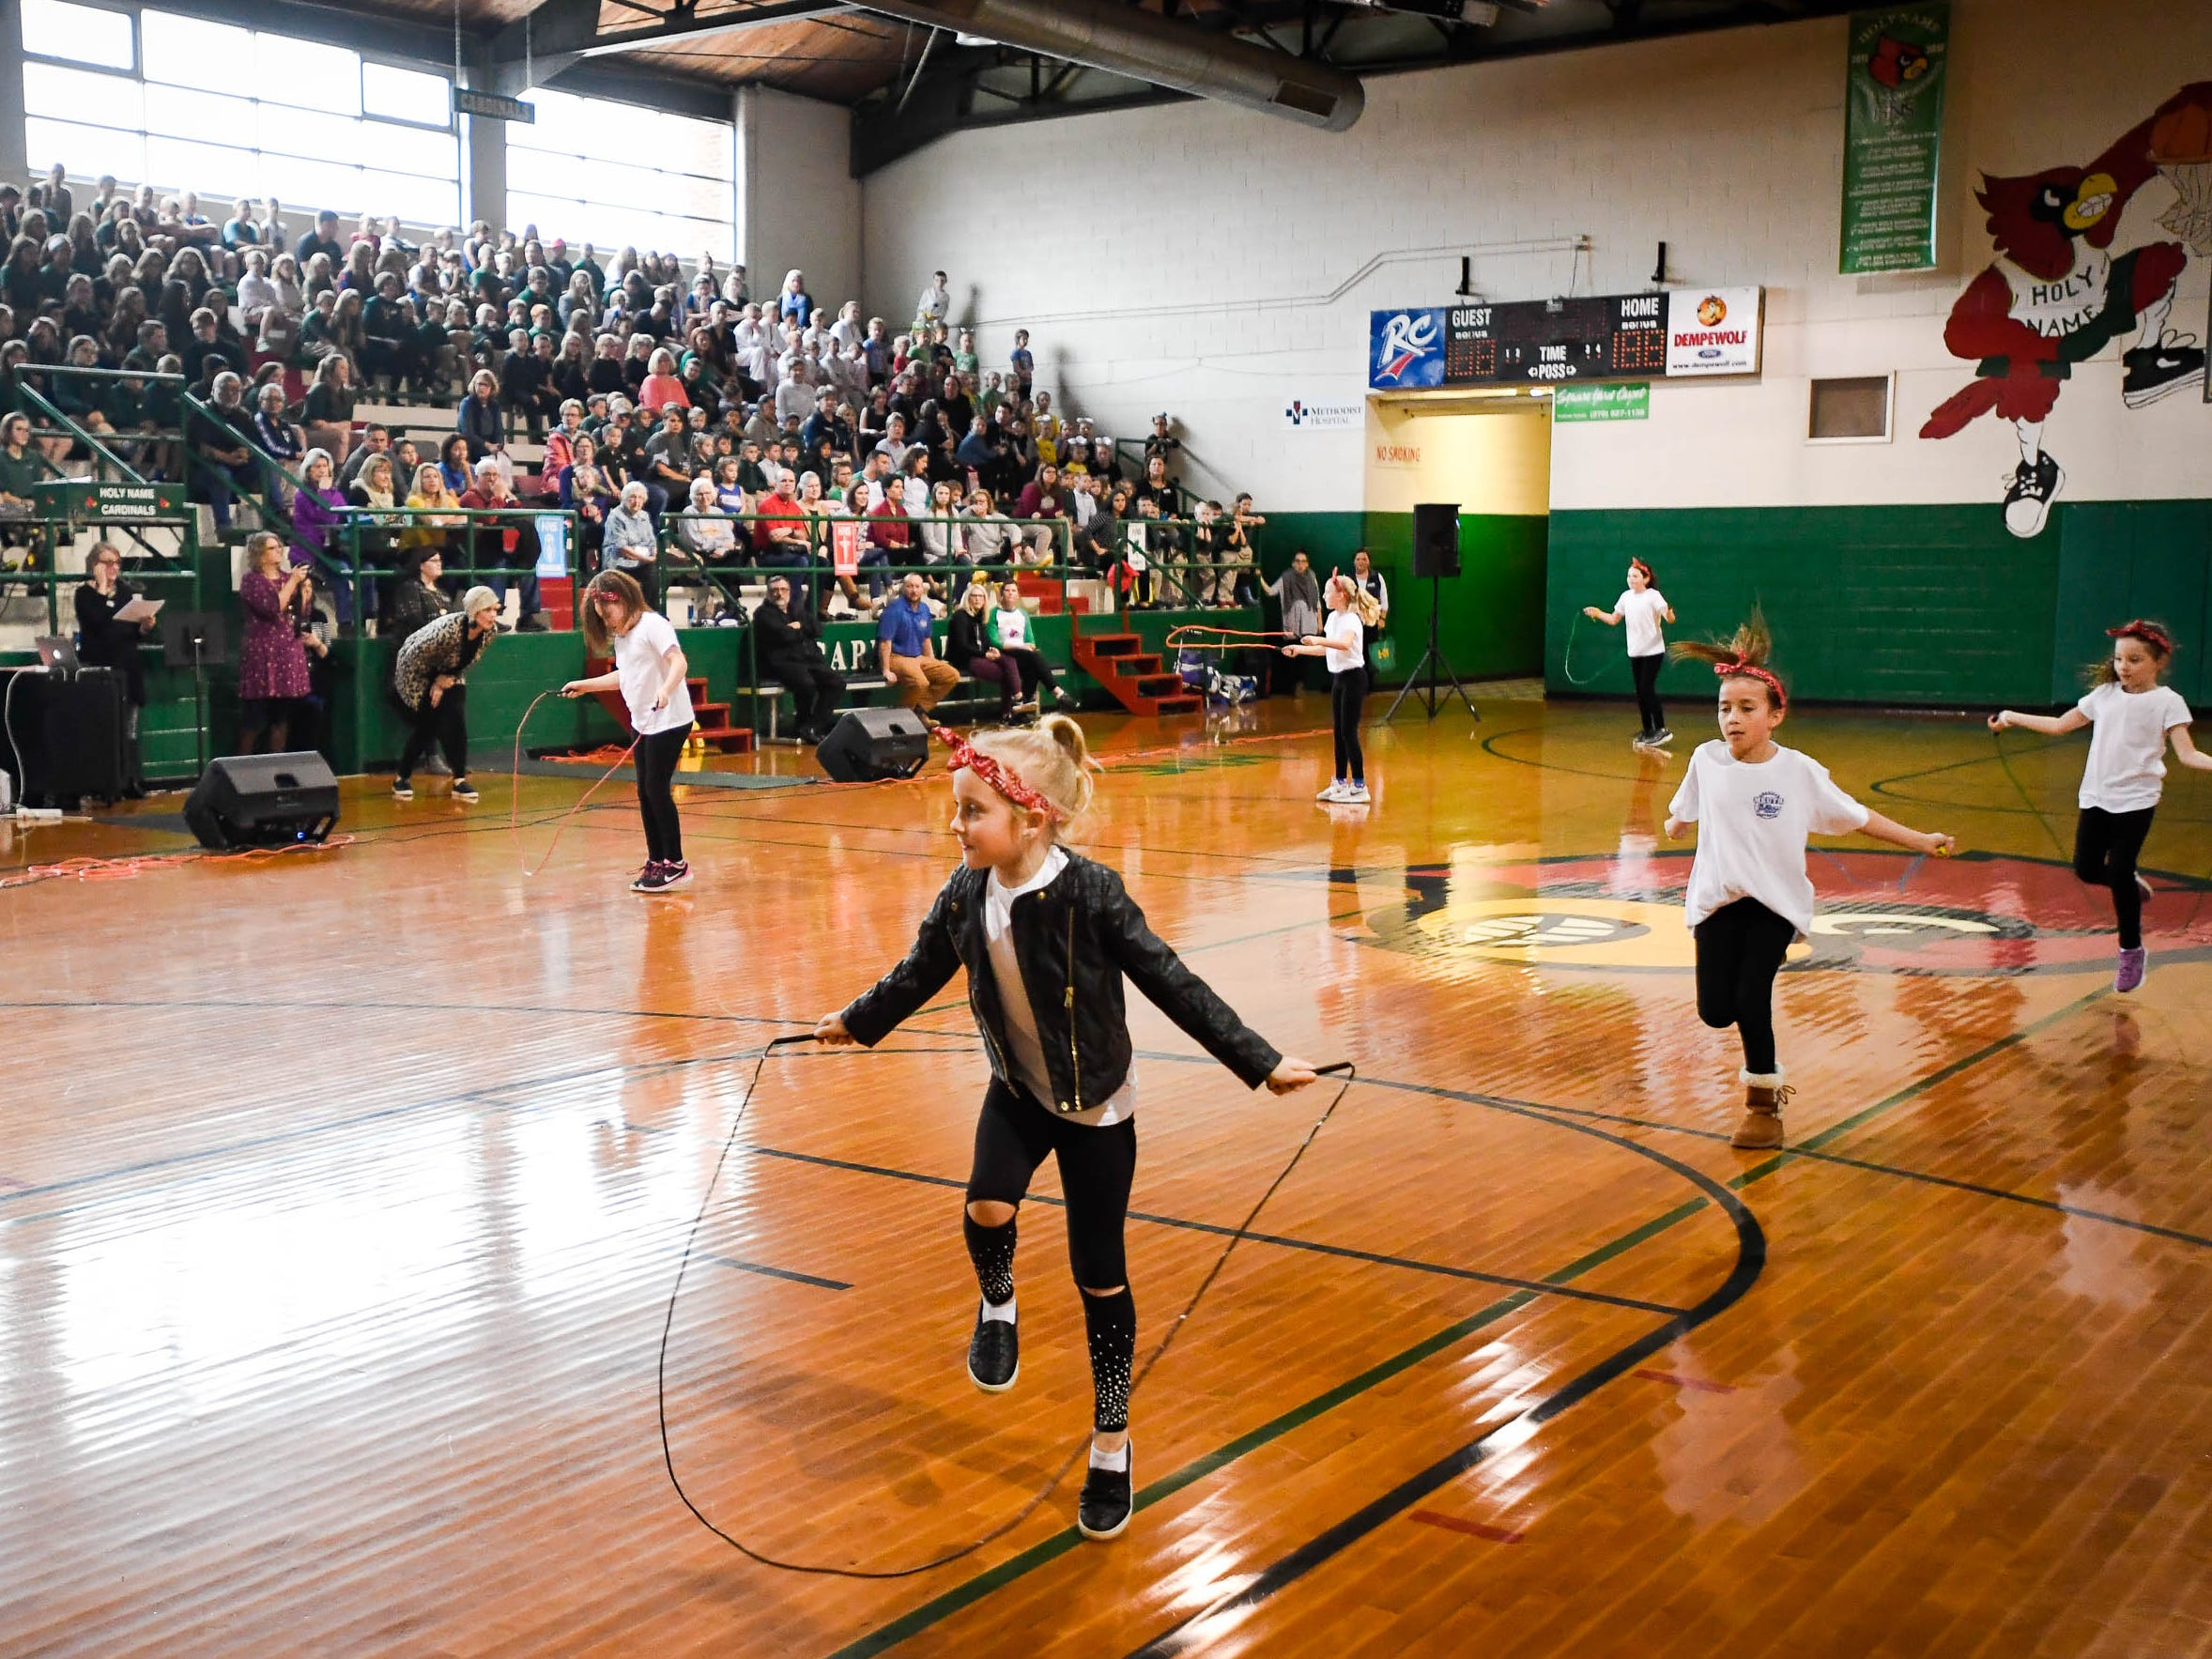 Jump rope skills on display during the Catholic Schools Week Talent Show at Henderson's Holy Name School Wednesday, February 6, 2019.